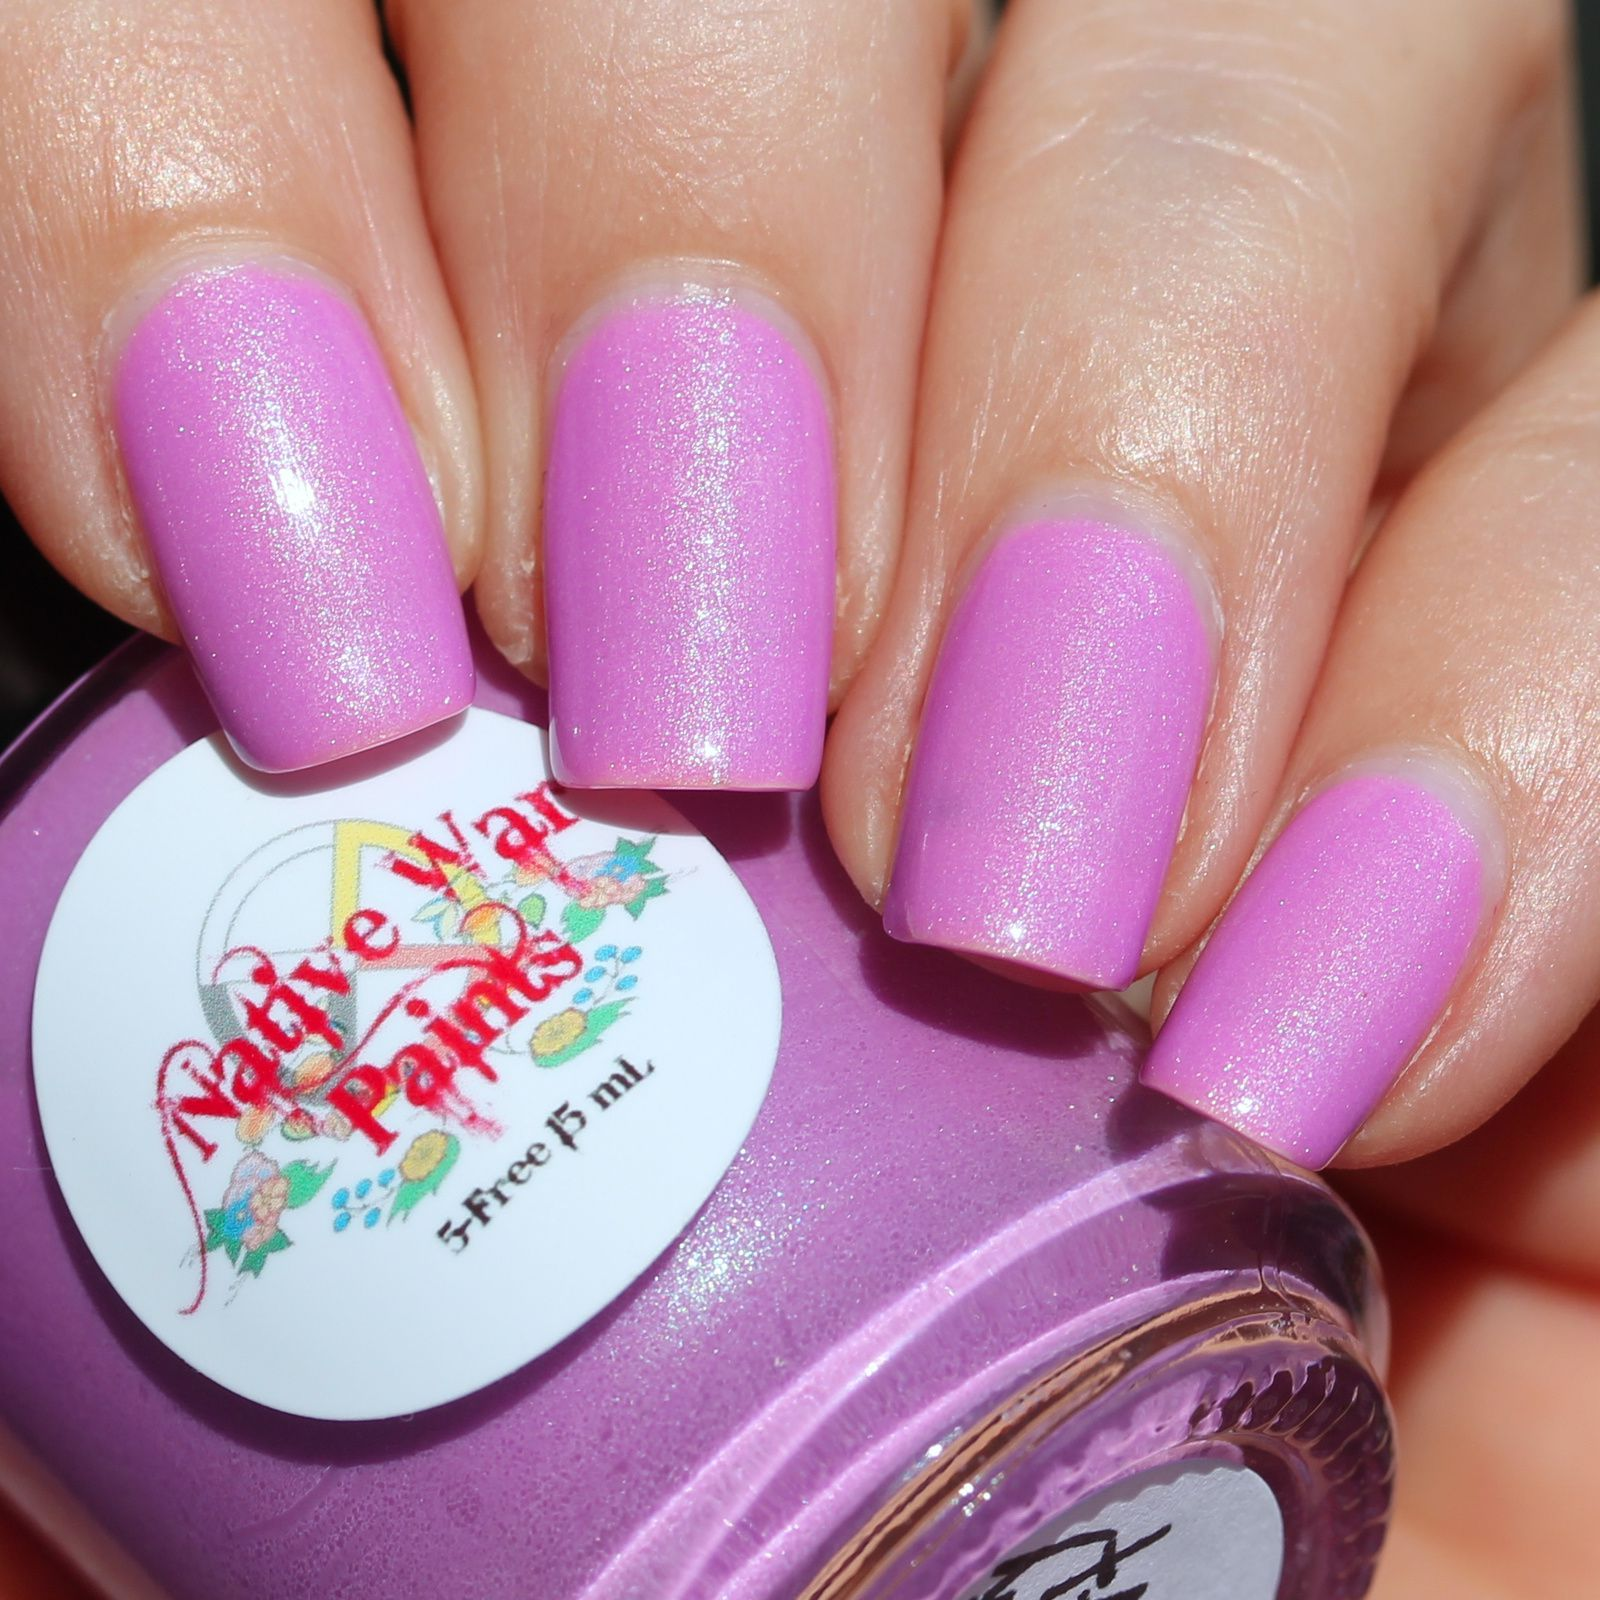 Sally Hansen Complete Care 4-in-1 Extra Moisturizing Nail Treatment / Native War Paints Blueberry Yogurt / Sally Hansen Miracle Gel Top Coat